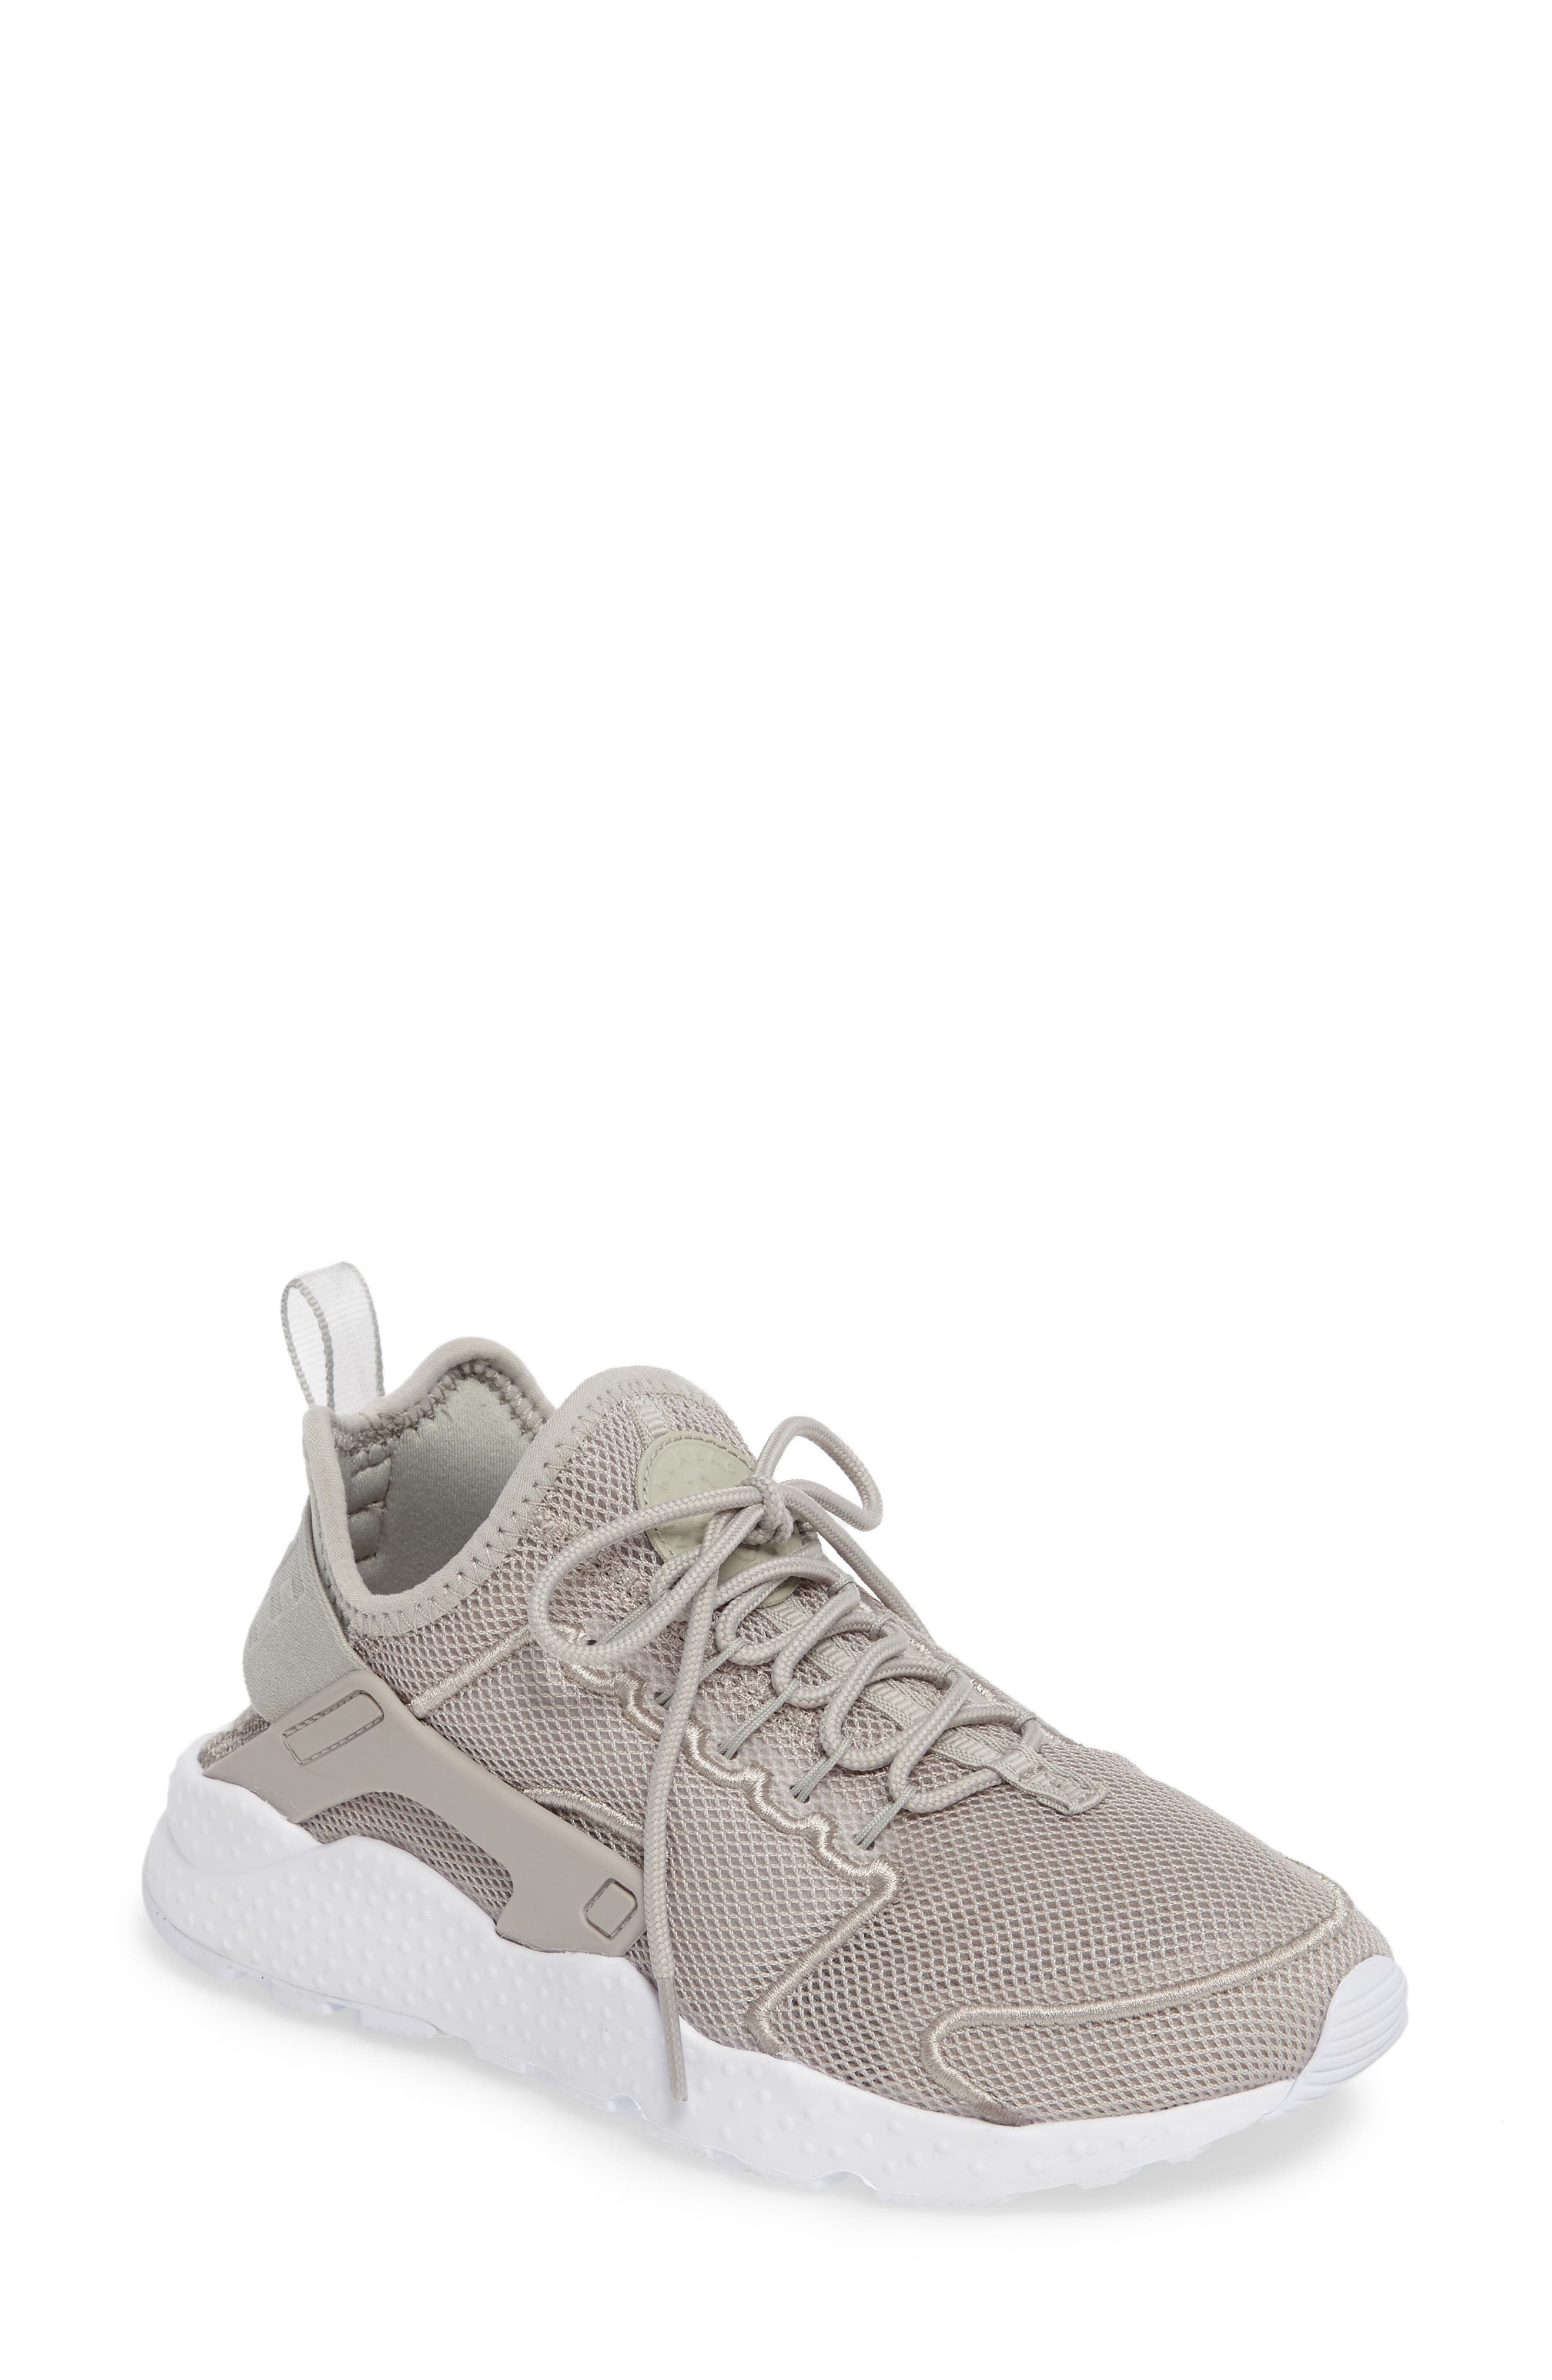 new products e5e60 fd8d8 ... where can i buy nike air huarache run ultra mesh sneaker women  nordstrom c9b2f ddcc5